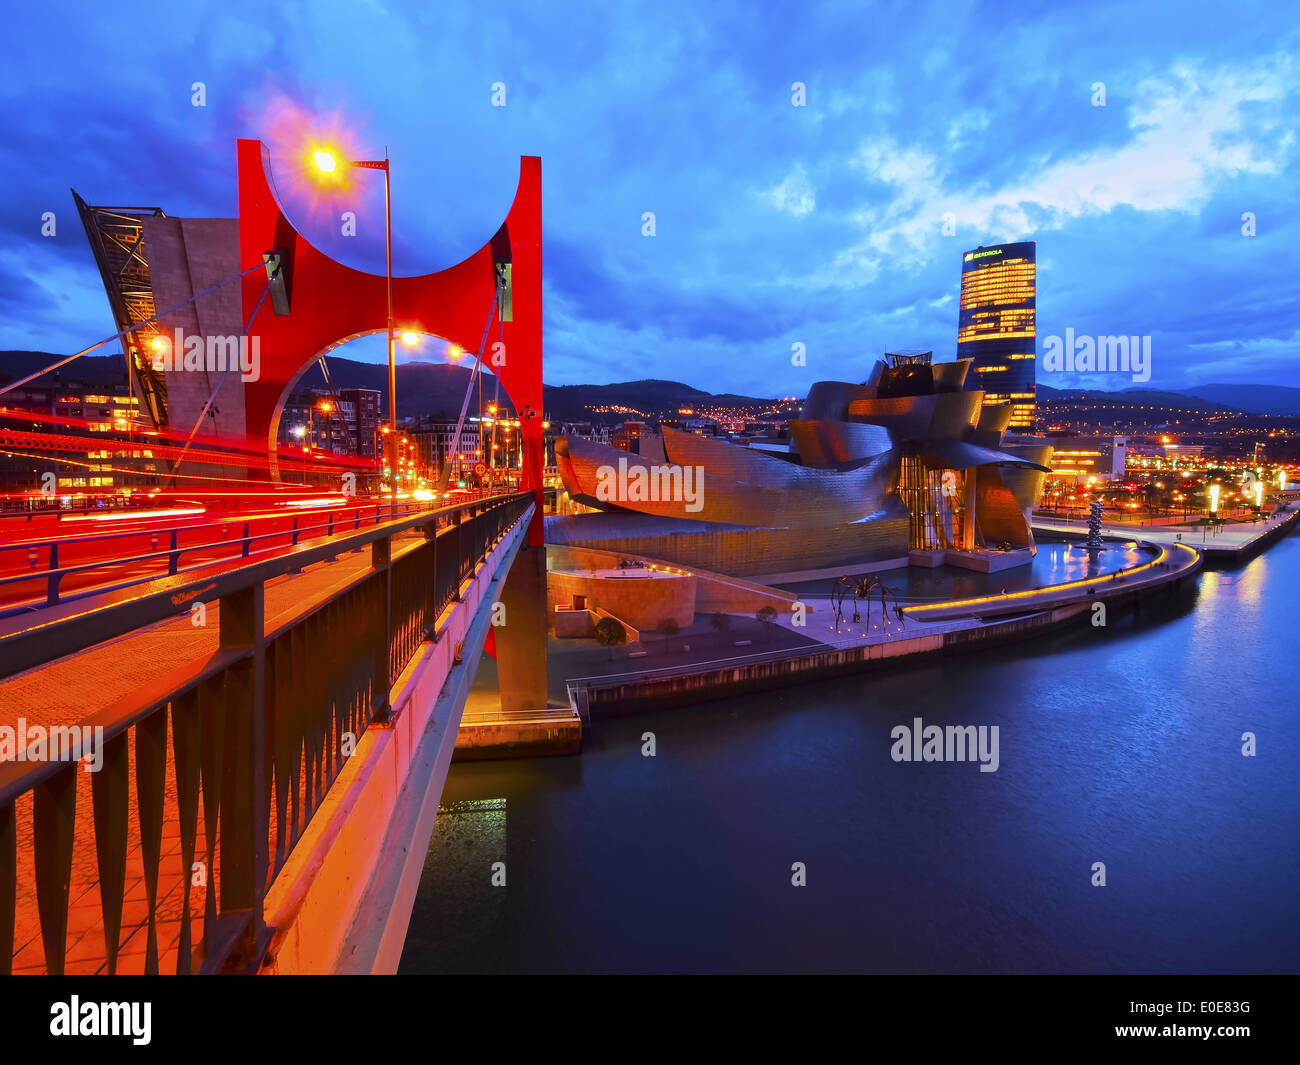 Night view of La Salve Bridge and The Guggenheim Museum in Bilbao, Biscay, Basque Country, Spain Stock Photo